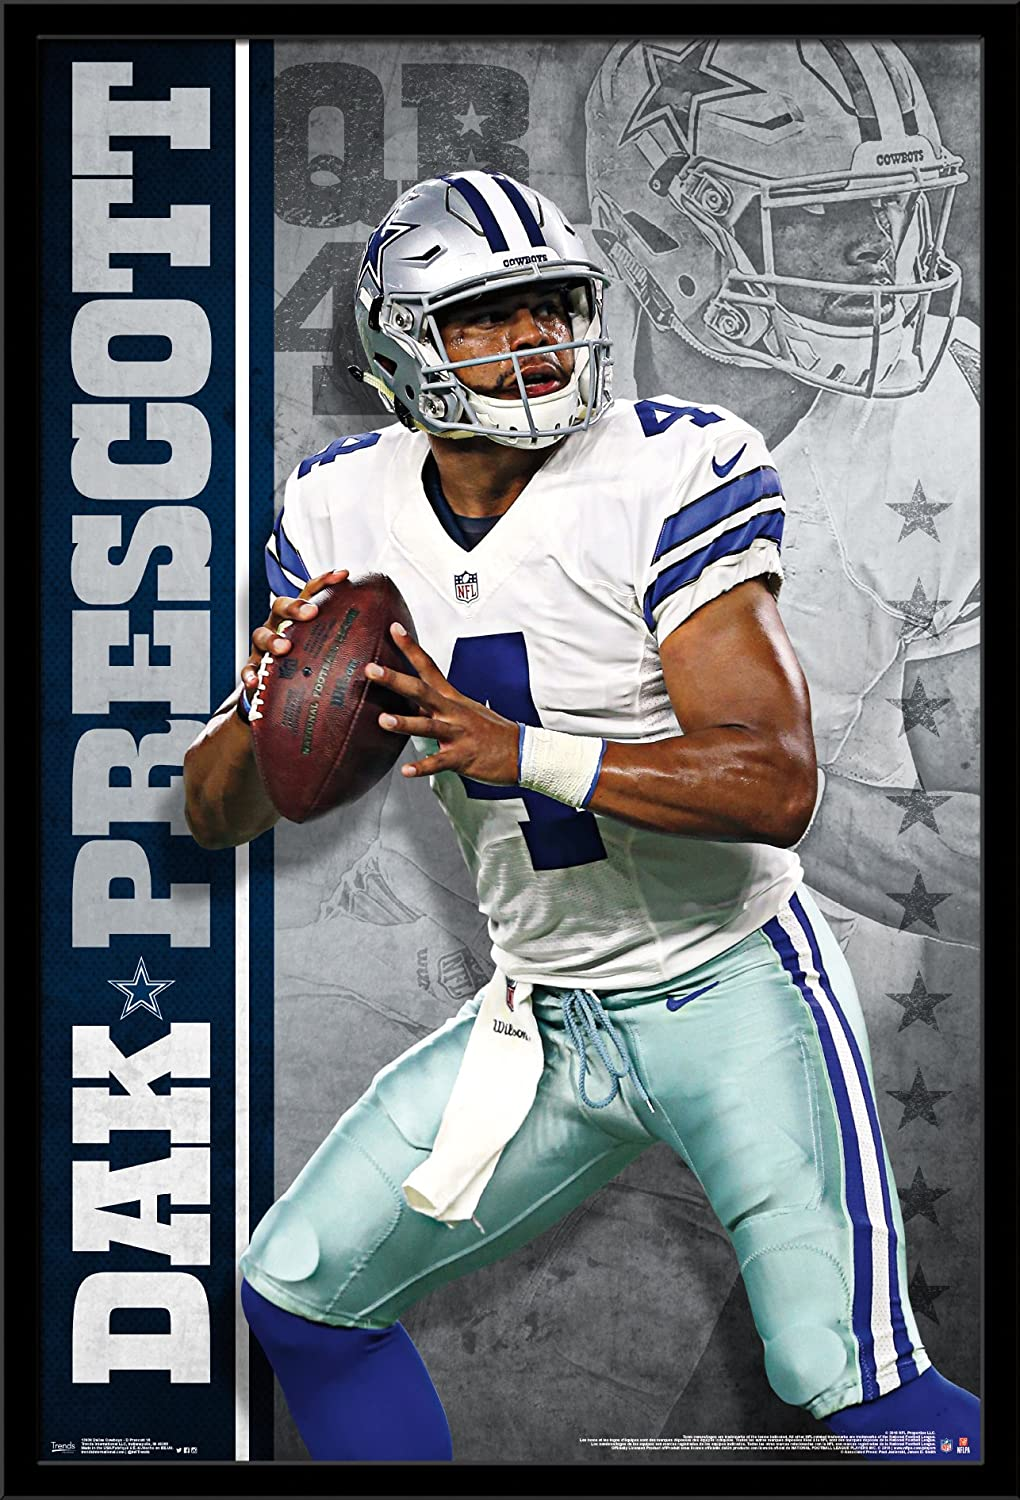 Poster - NFL - Dallas Cowboys - E Elliott 16 New Wall Art 22x34 rp15013 Trends  International Top Christmas gifts 2018 7fd4ea948